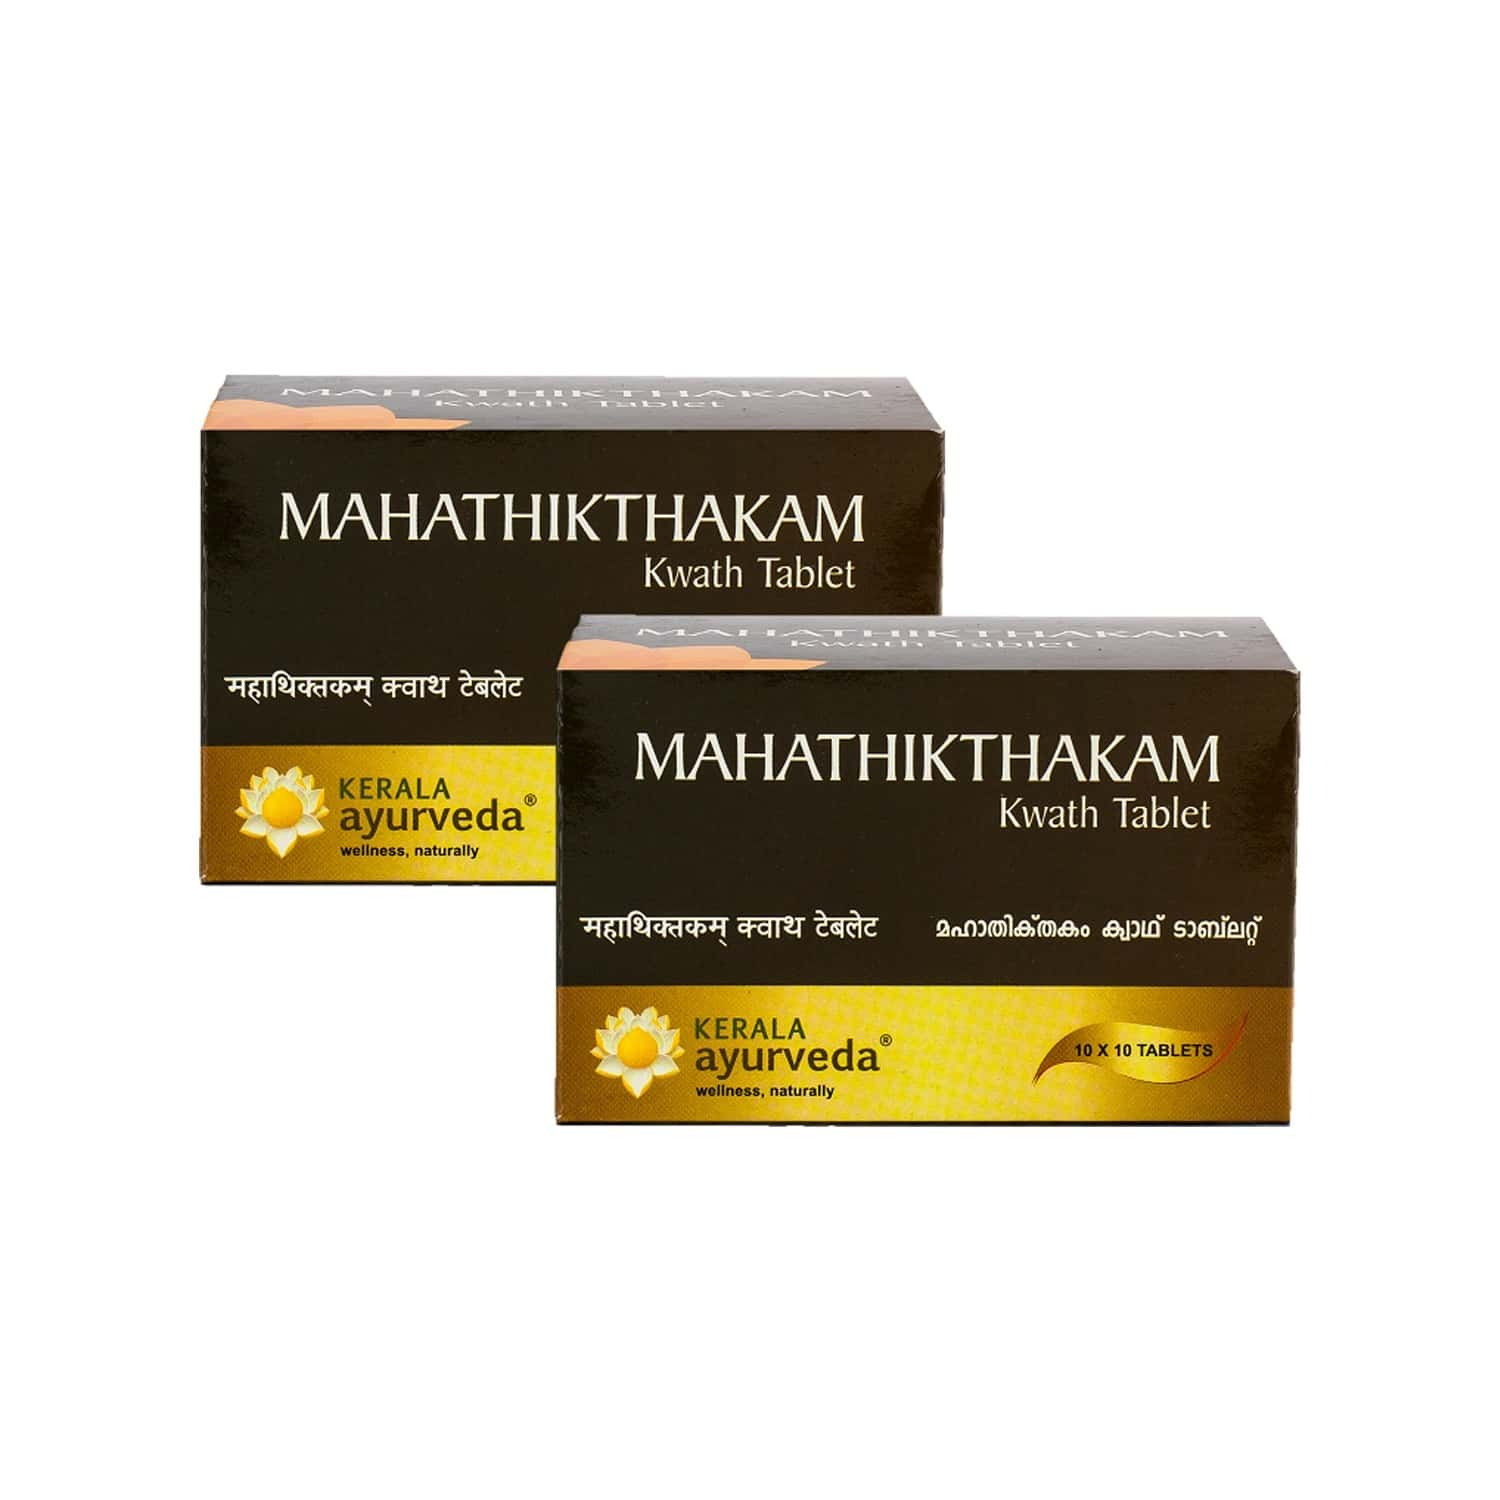 Kerala Ayurveda Mahathikthakam Kwath Tablet - 30 Nos - Pack Of 2